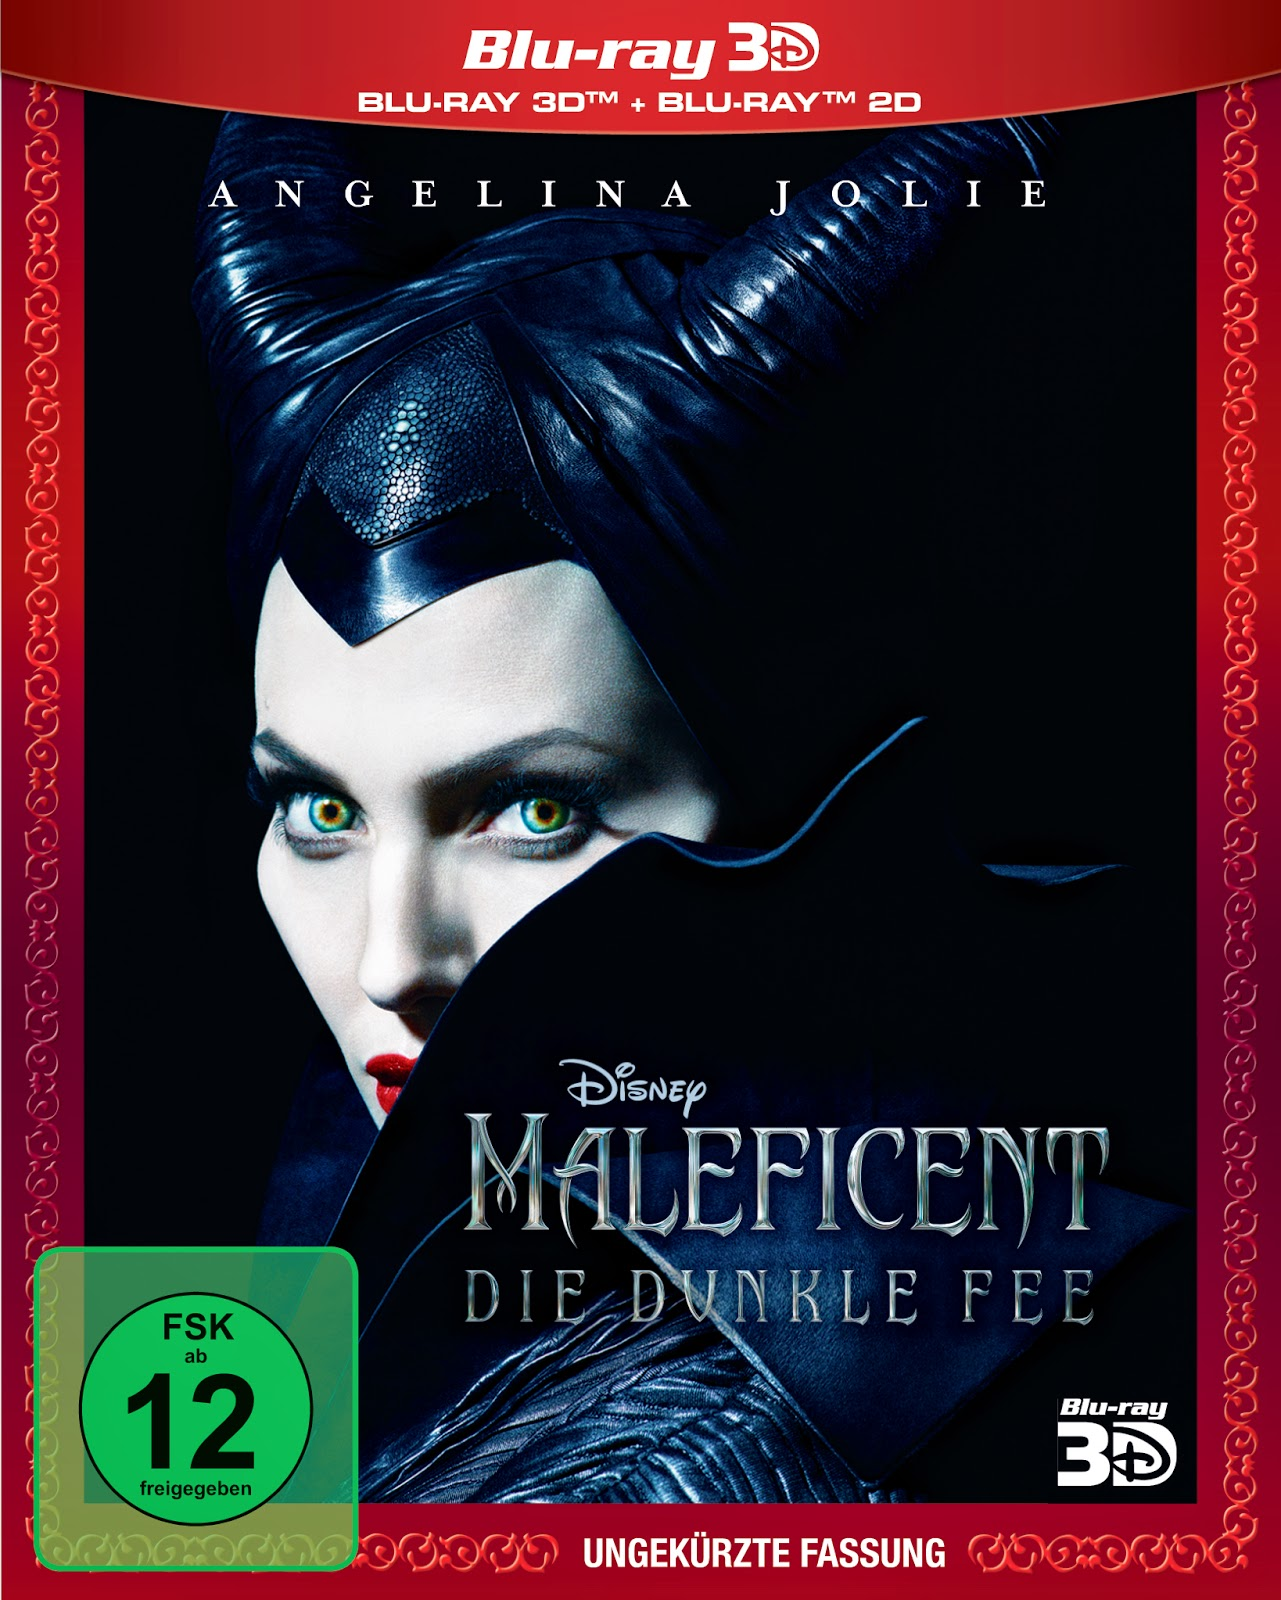 http://www.amazon.de/Maleficent-Dunkle-inkl-2D-Blu-ray-Blu-ray/dp/B00KBE1X88/ref=sr_1_3?s=dvd&ie=UTF8&qid=1420227599&sr=1-3&keywords=maleficent